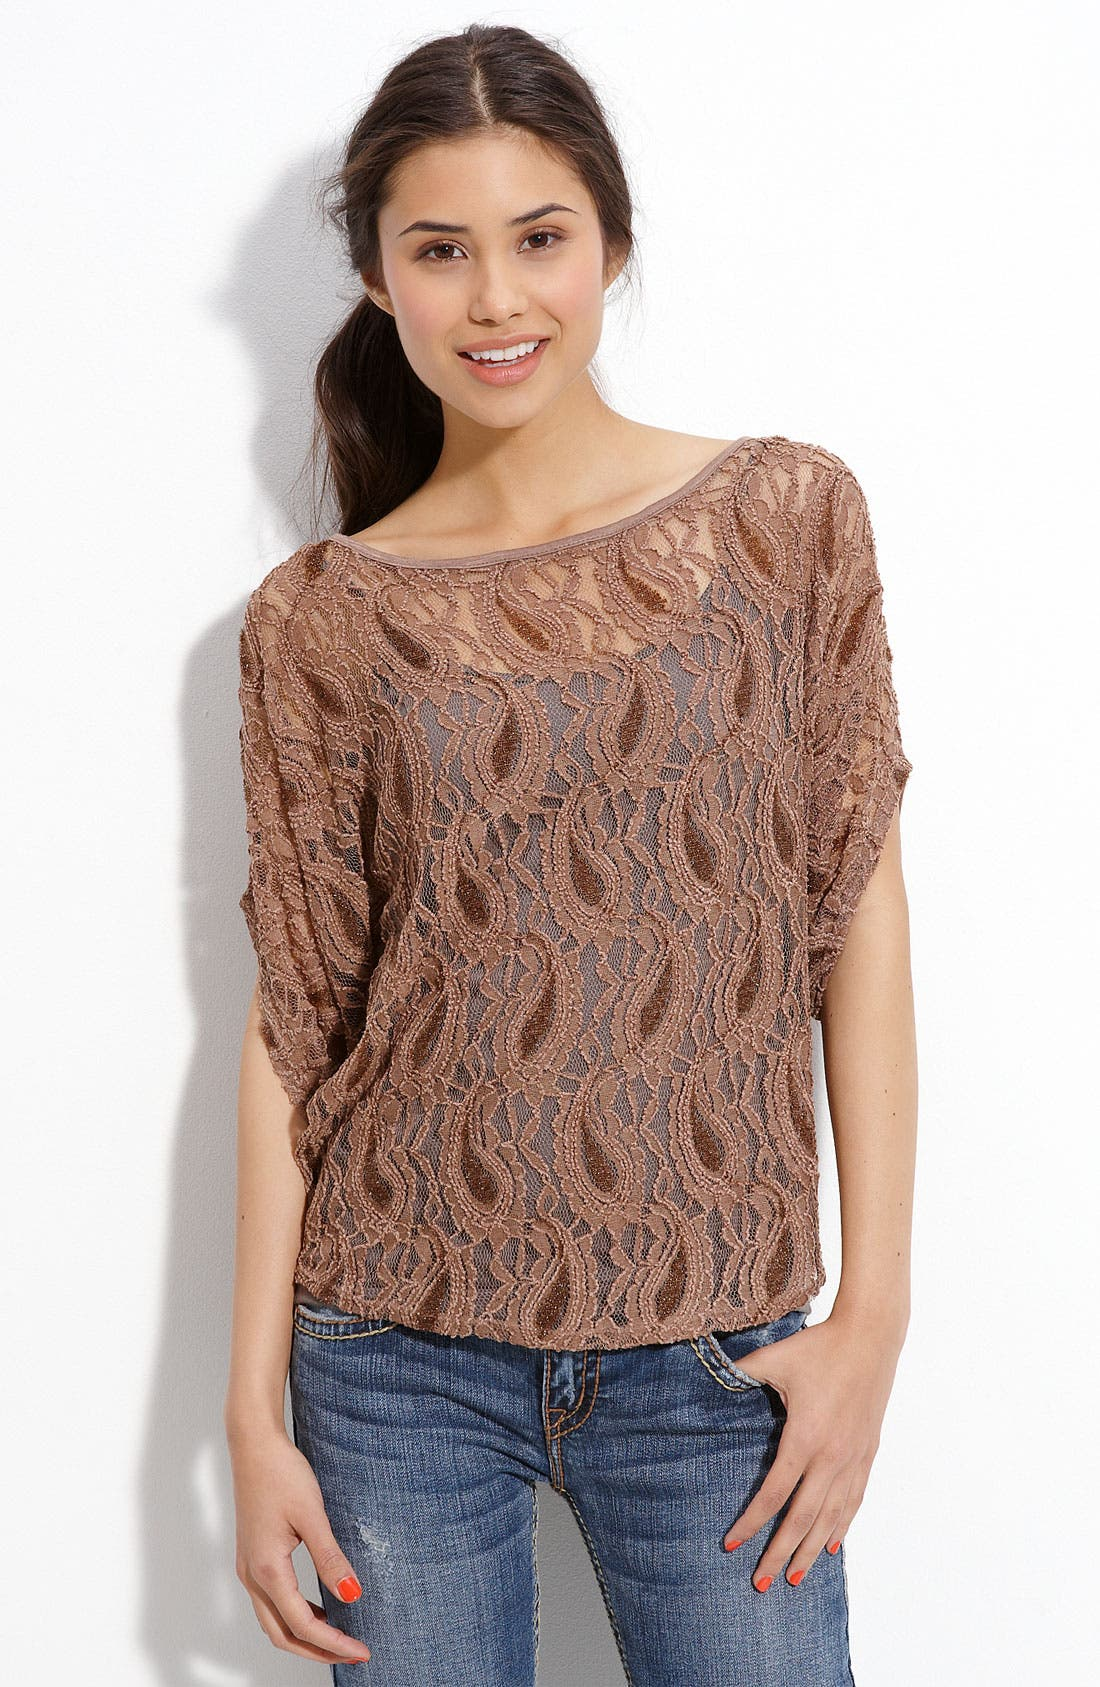 Alternate Image 1 Selected - h.i.p. Crochet Top (Juniors)